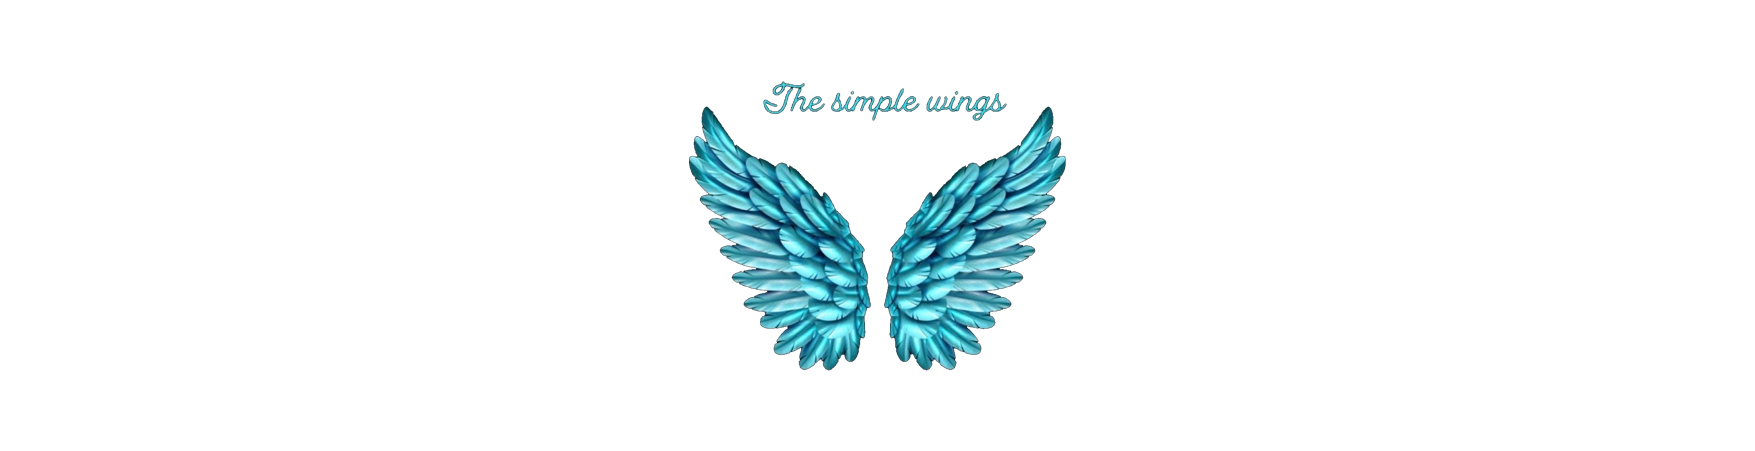 The Simple Wings